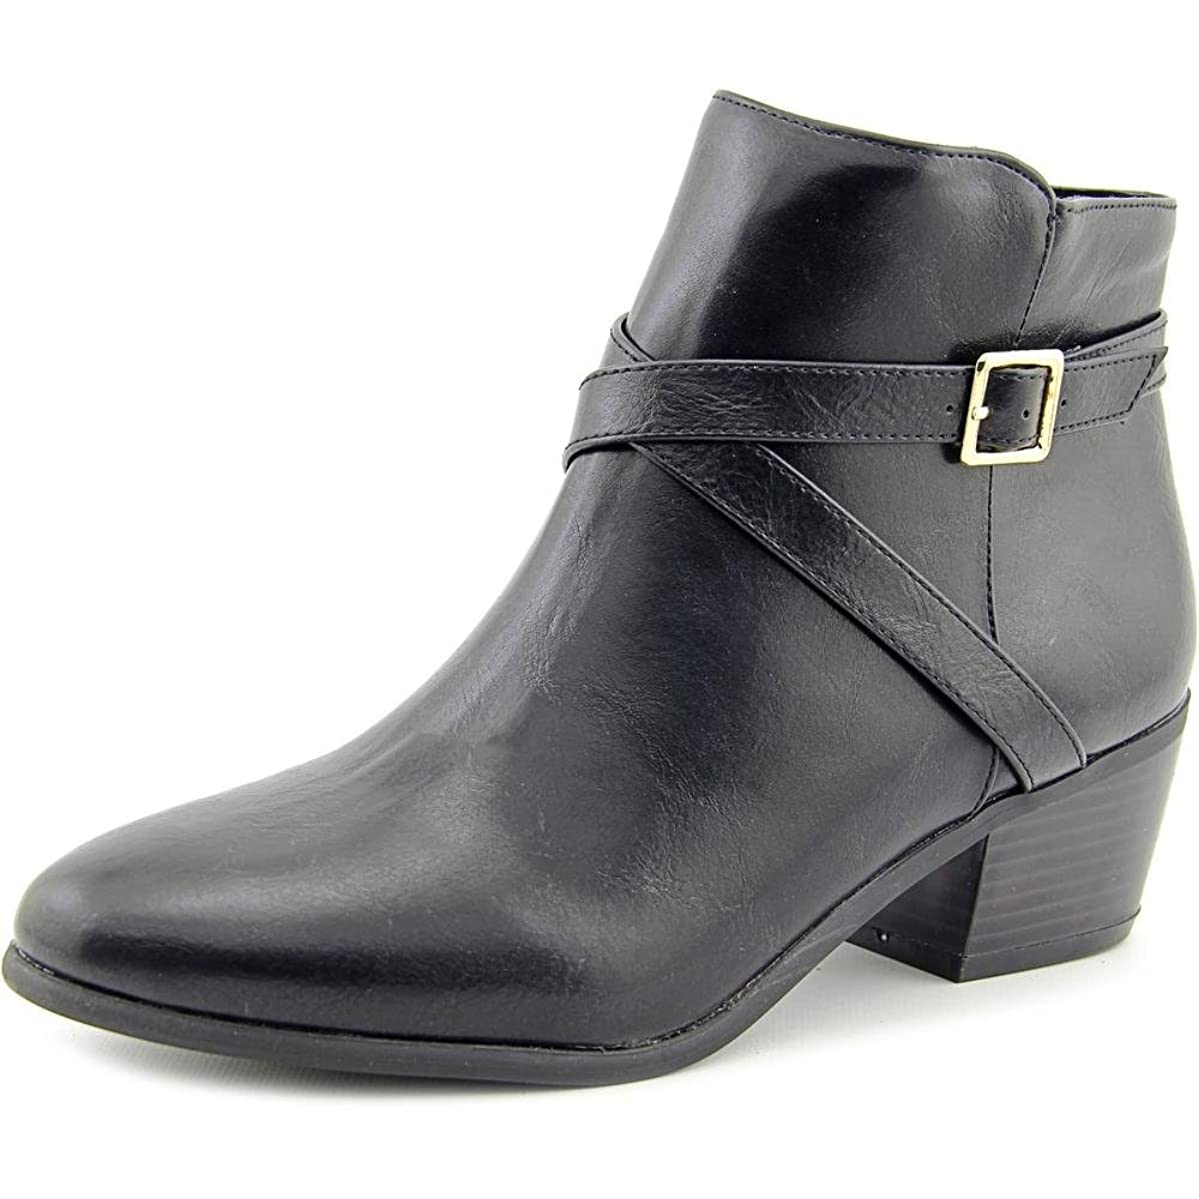 ビルダー告白する明るくするKaren Scott Womens Flynne Closed Toe Fashion Boots, Black, Size 8.5